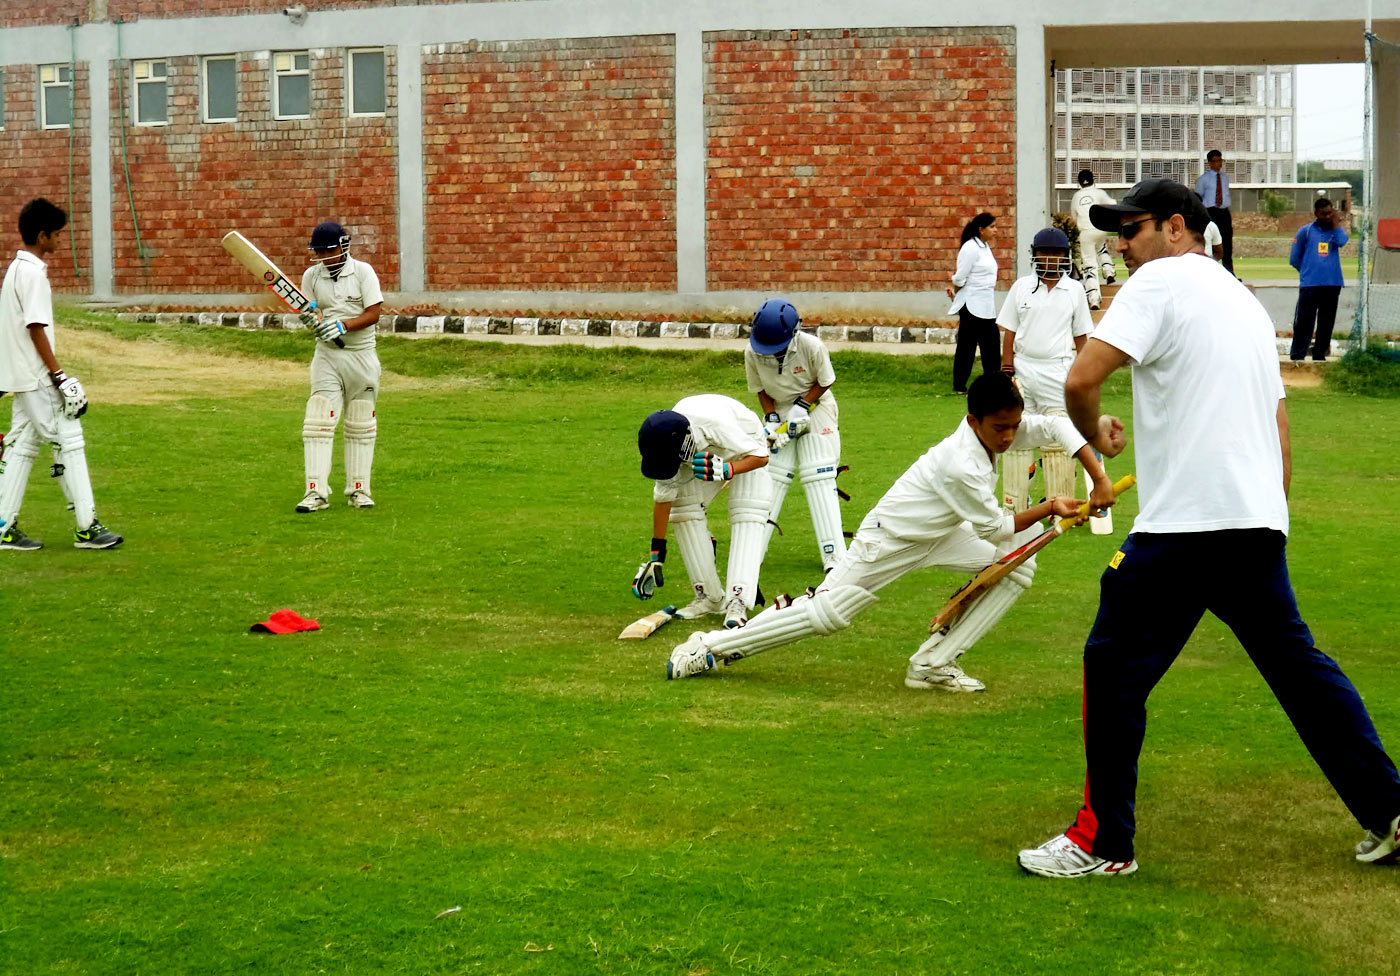 Want To Be A Cricketer? Here Are 6 Indian Cricket Academies You Should Consider Joining 1